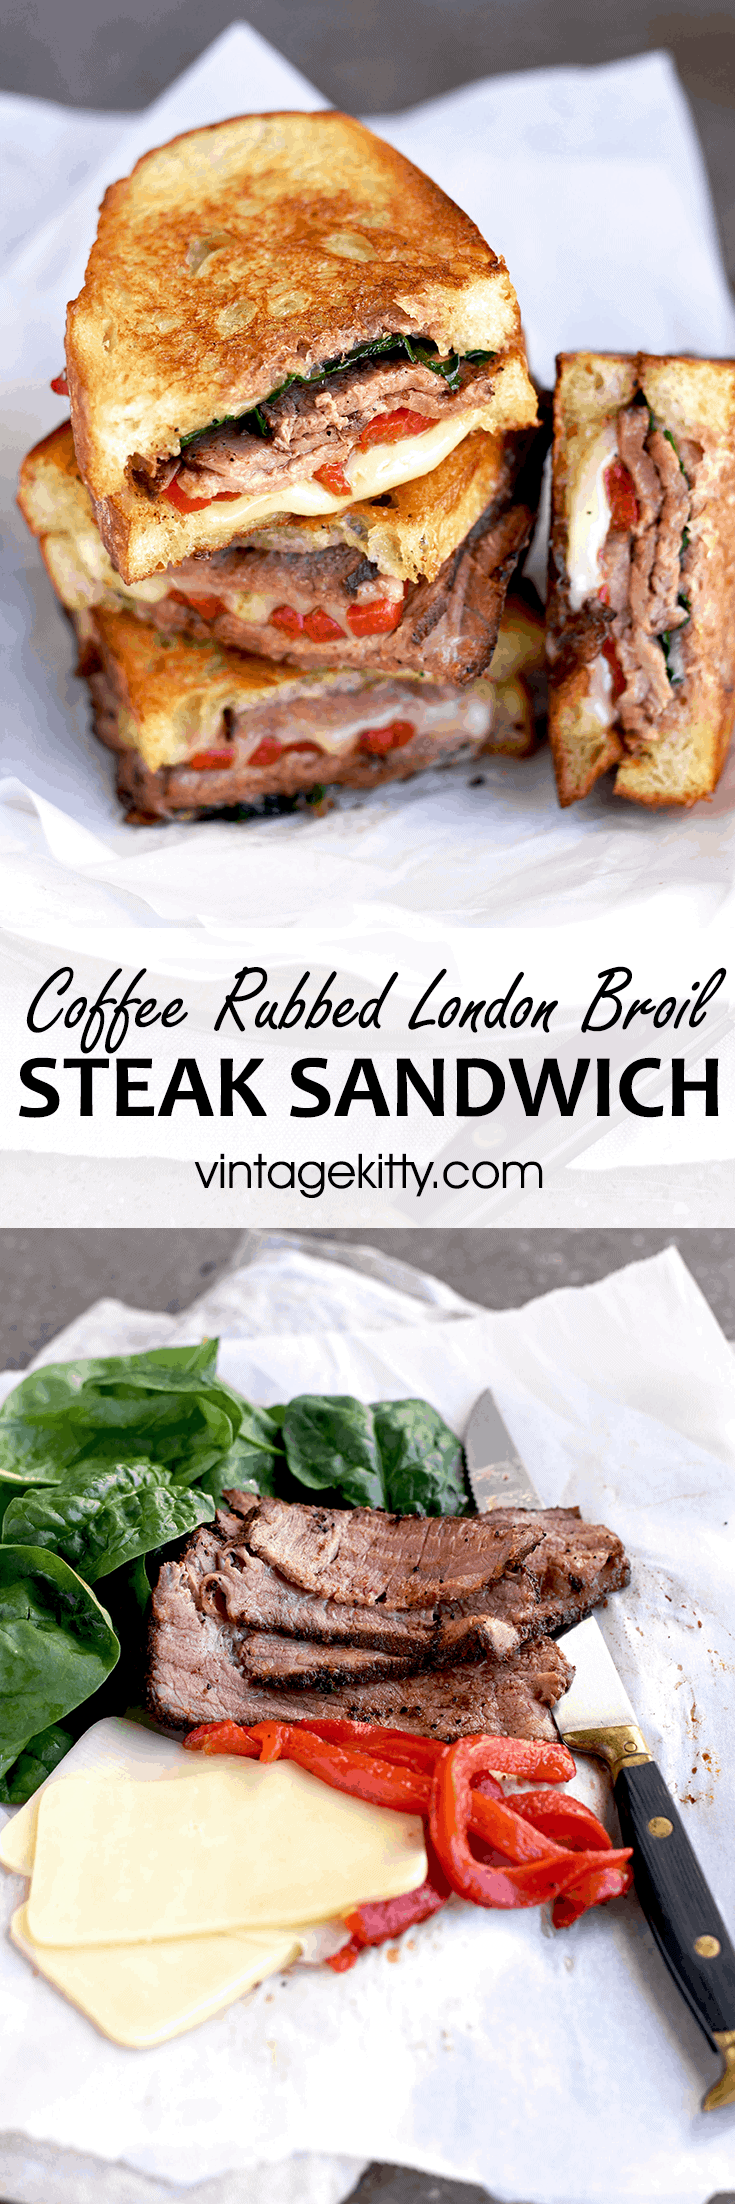 Steak Sandwich Pin - London Broil Steak Sandwich with Roasted Peppers, Spinach and Cheese